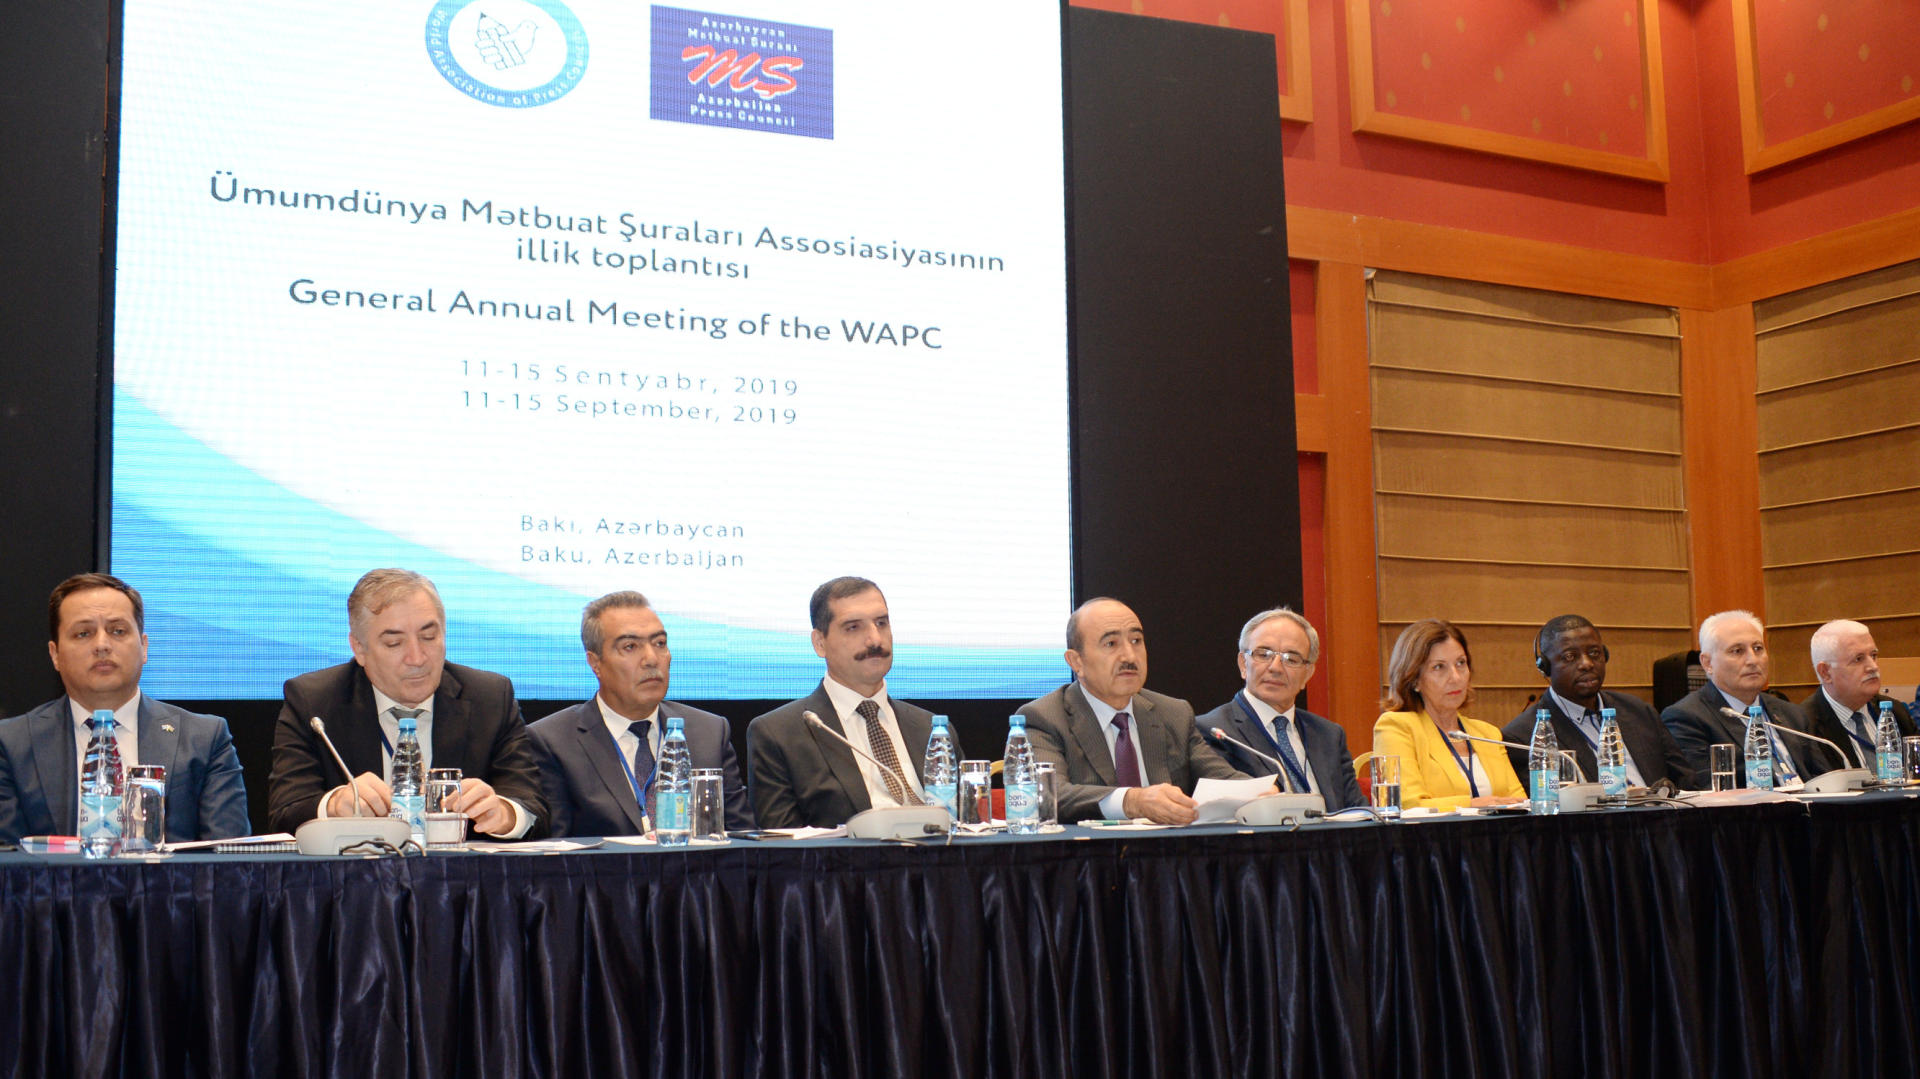 Annual meeting of World Association of Press Councils starts in Baku (PHOTO)